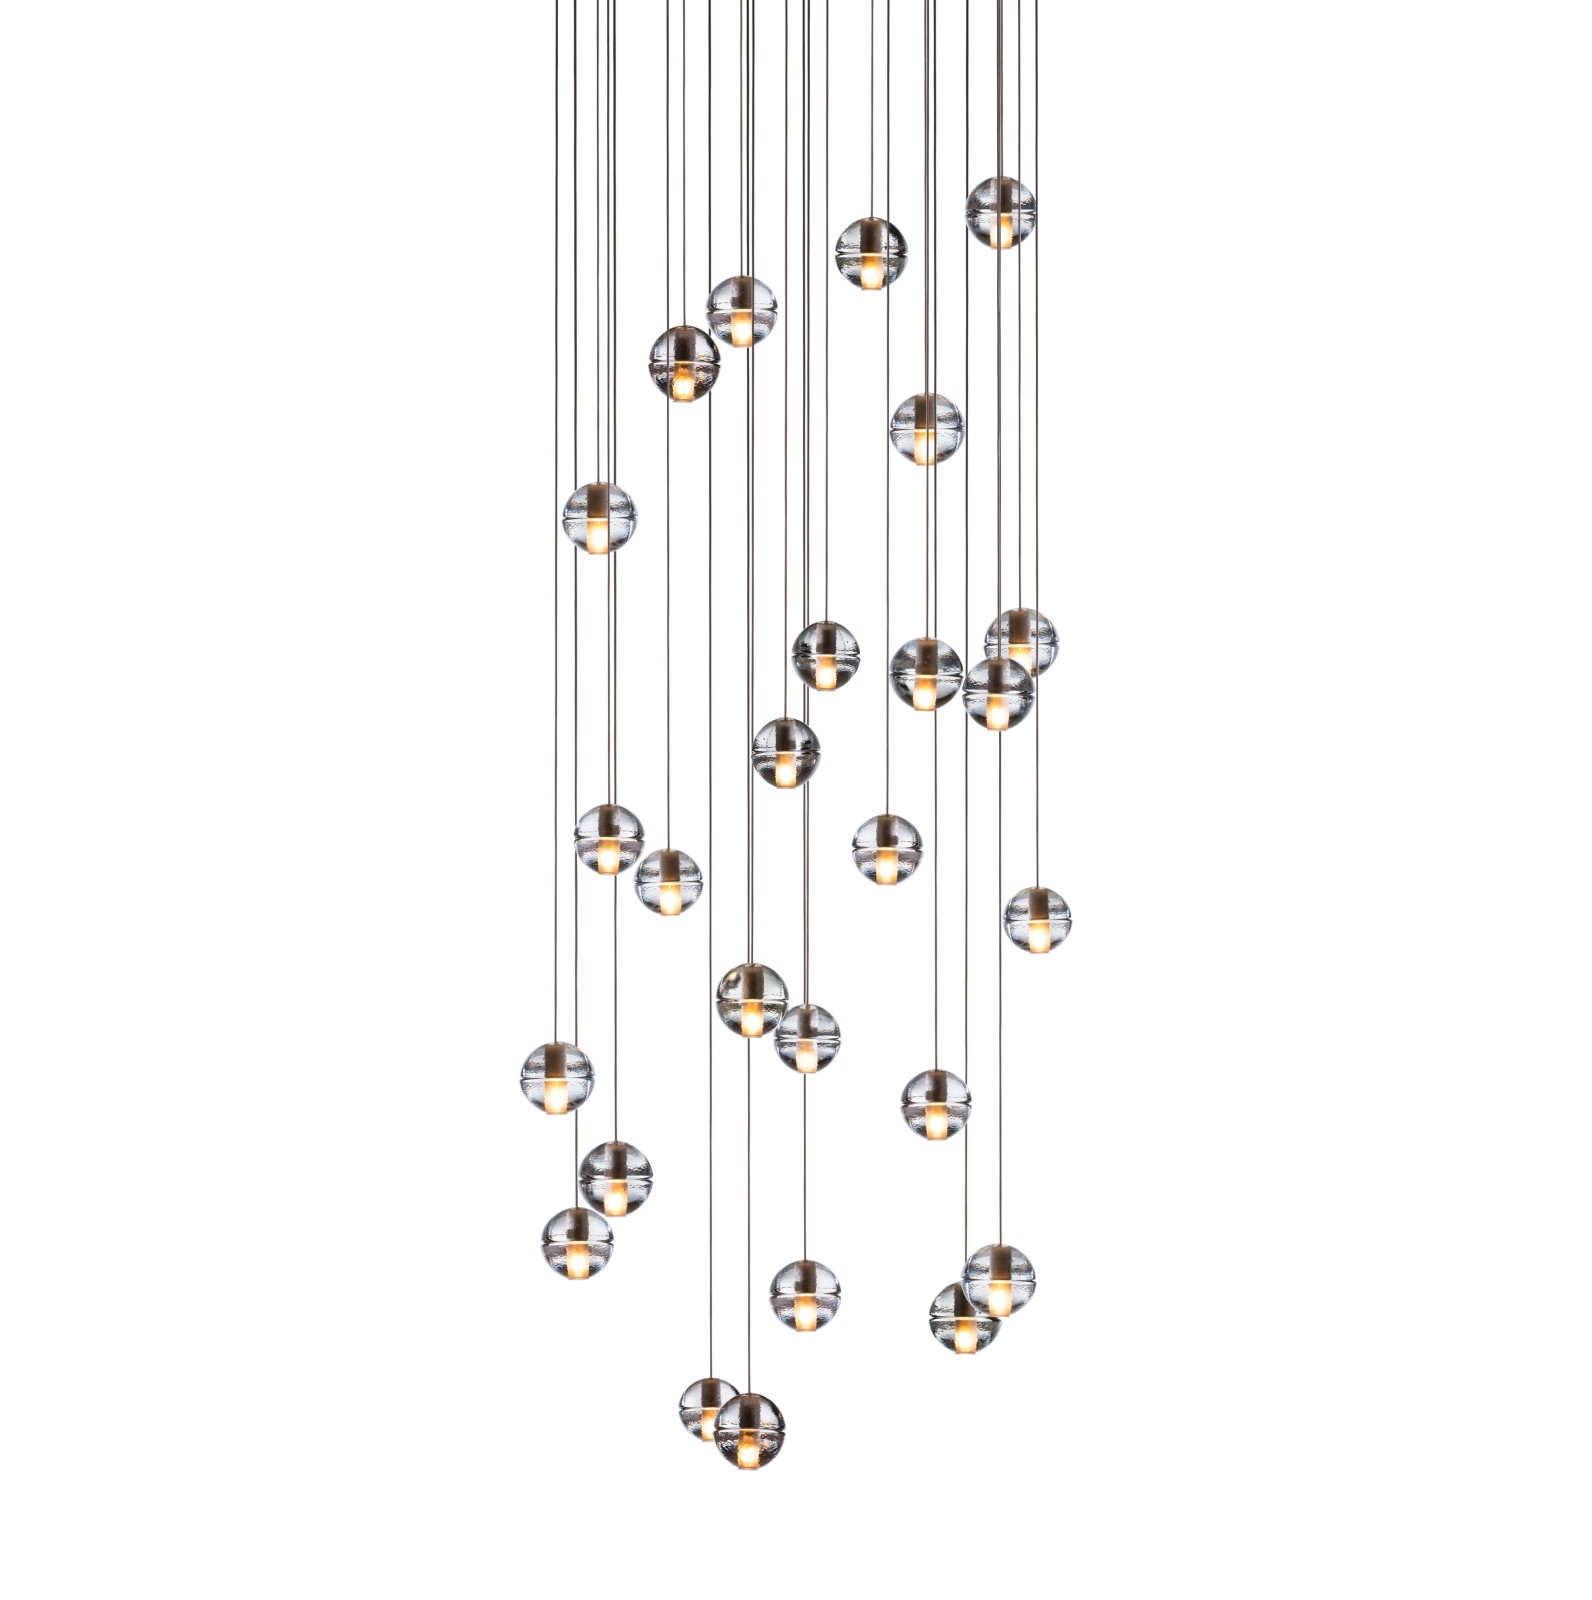 14.26 Rectangular Pendant Chandelier Clear, Xenon